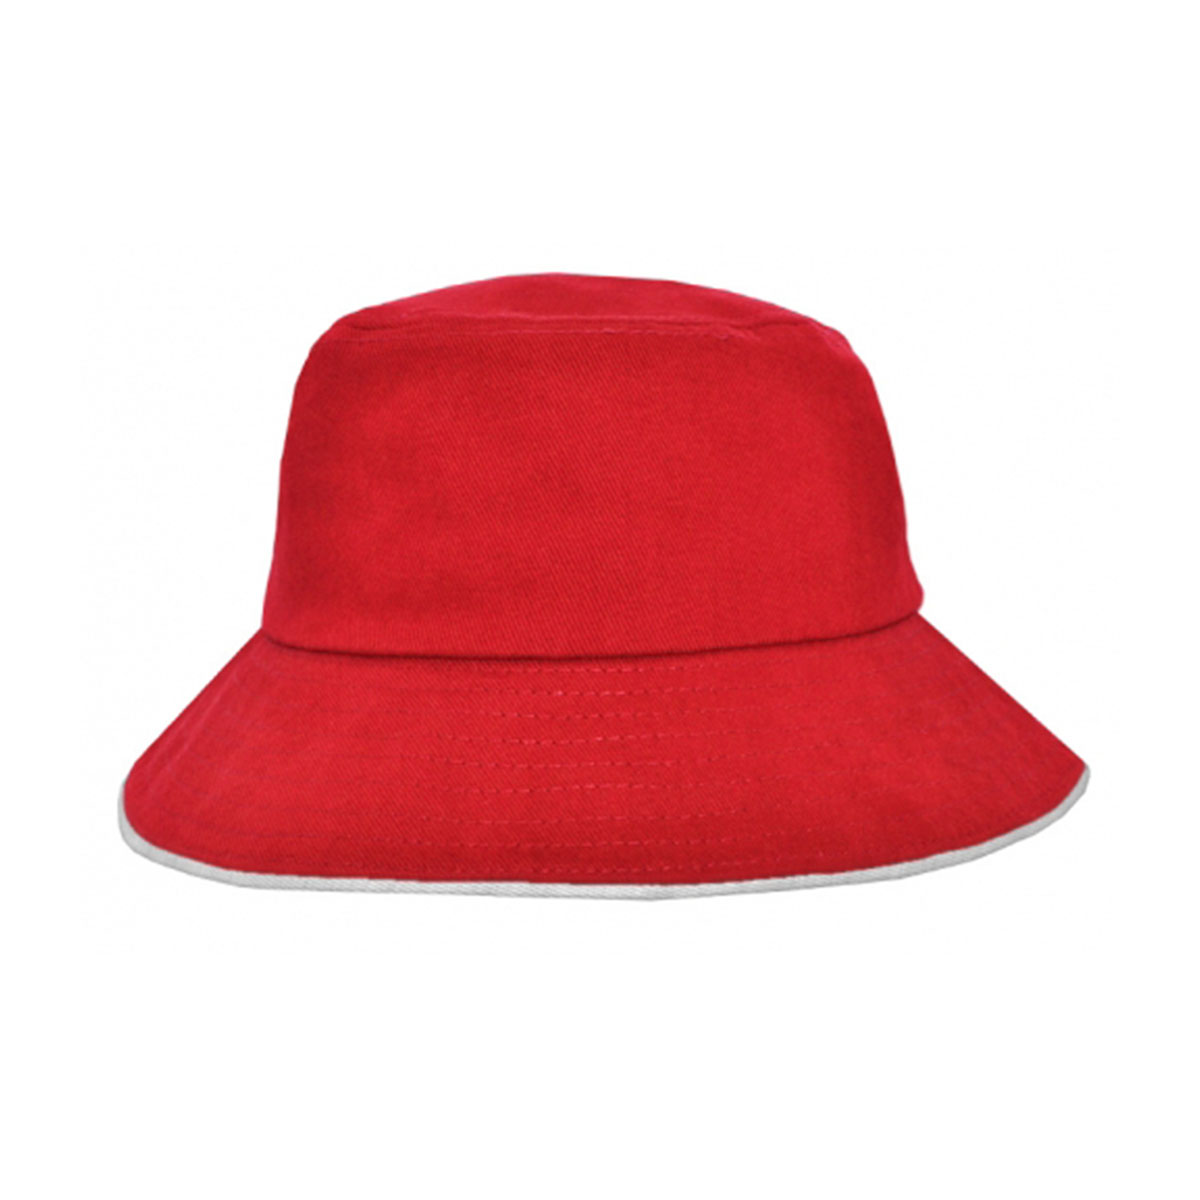 Bucket Hat Sandwich Design-Red / White